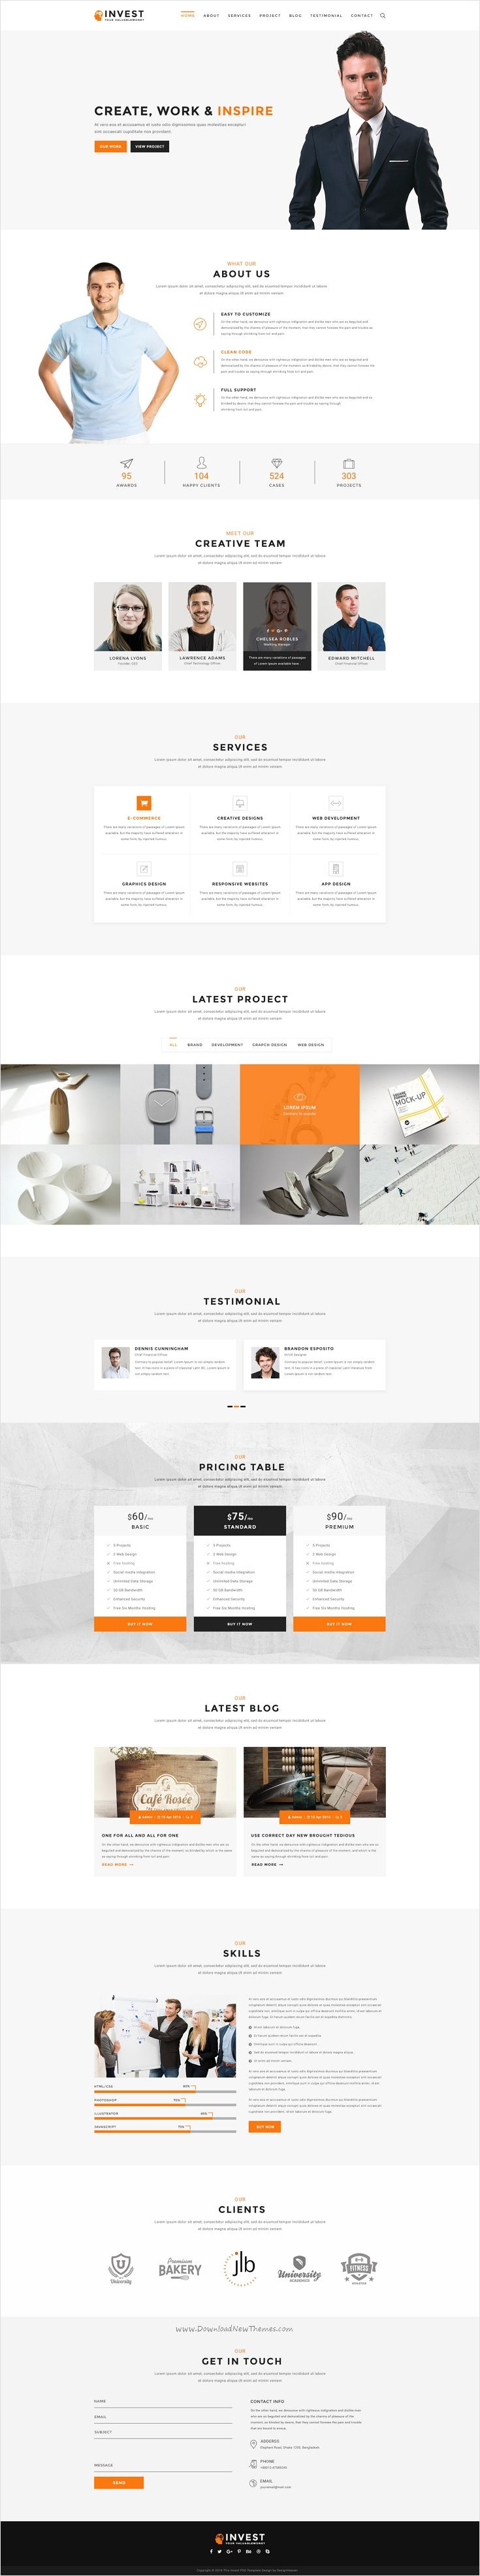 Invest is a unique, modern multipurpose 3 in 1 #PSD #template for any kind of #business, corporate website download now➩ https://themeforest.net/item/invest-multipurpose-business-psd-template/18484767?ref=Datasata